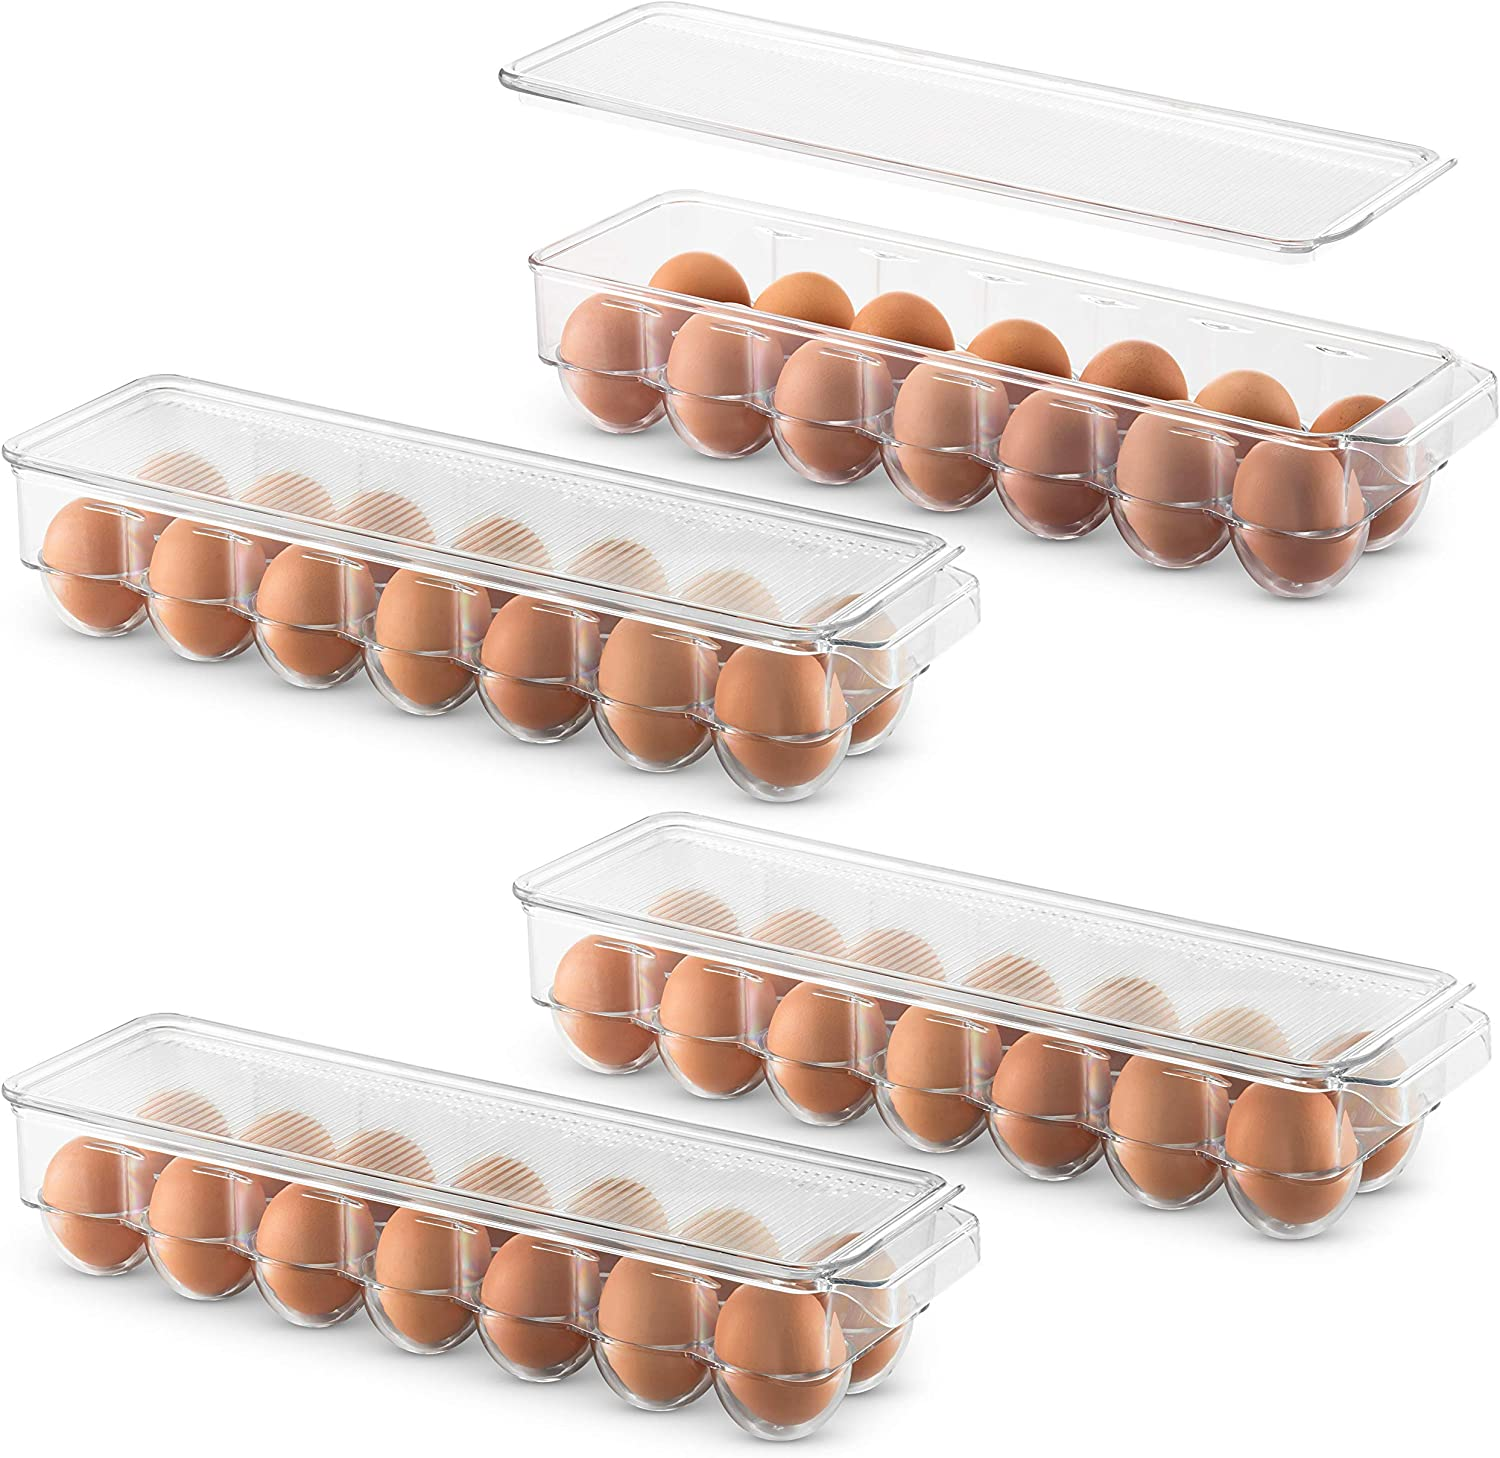 Clear Refrigerator Organizer Bins with Lids Plastic Egg Storage Container for Fridge Vtopmart Egg Holder for Refrigerator 2 Pack Stackable Tray Holds 14 Eggs